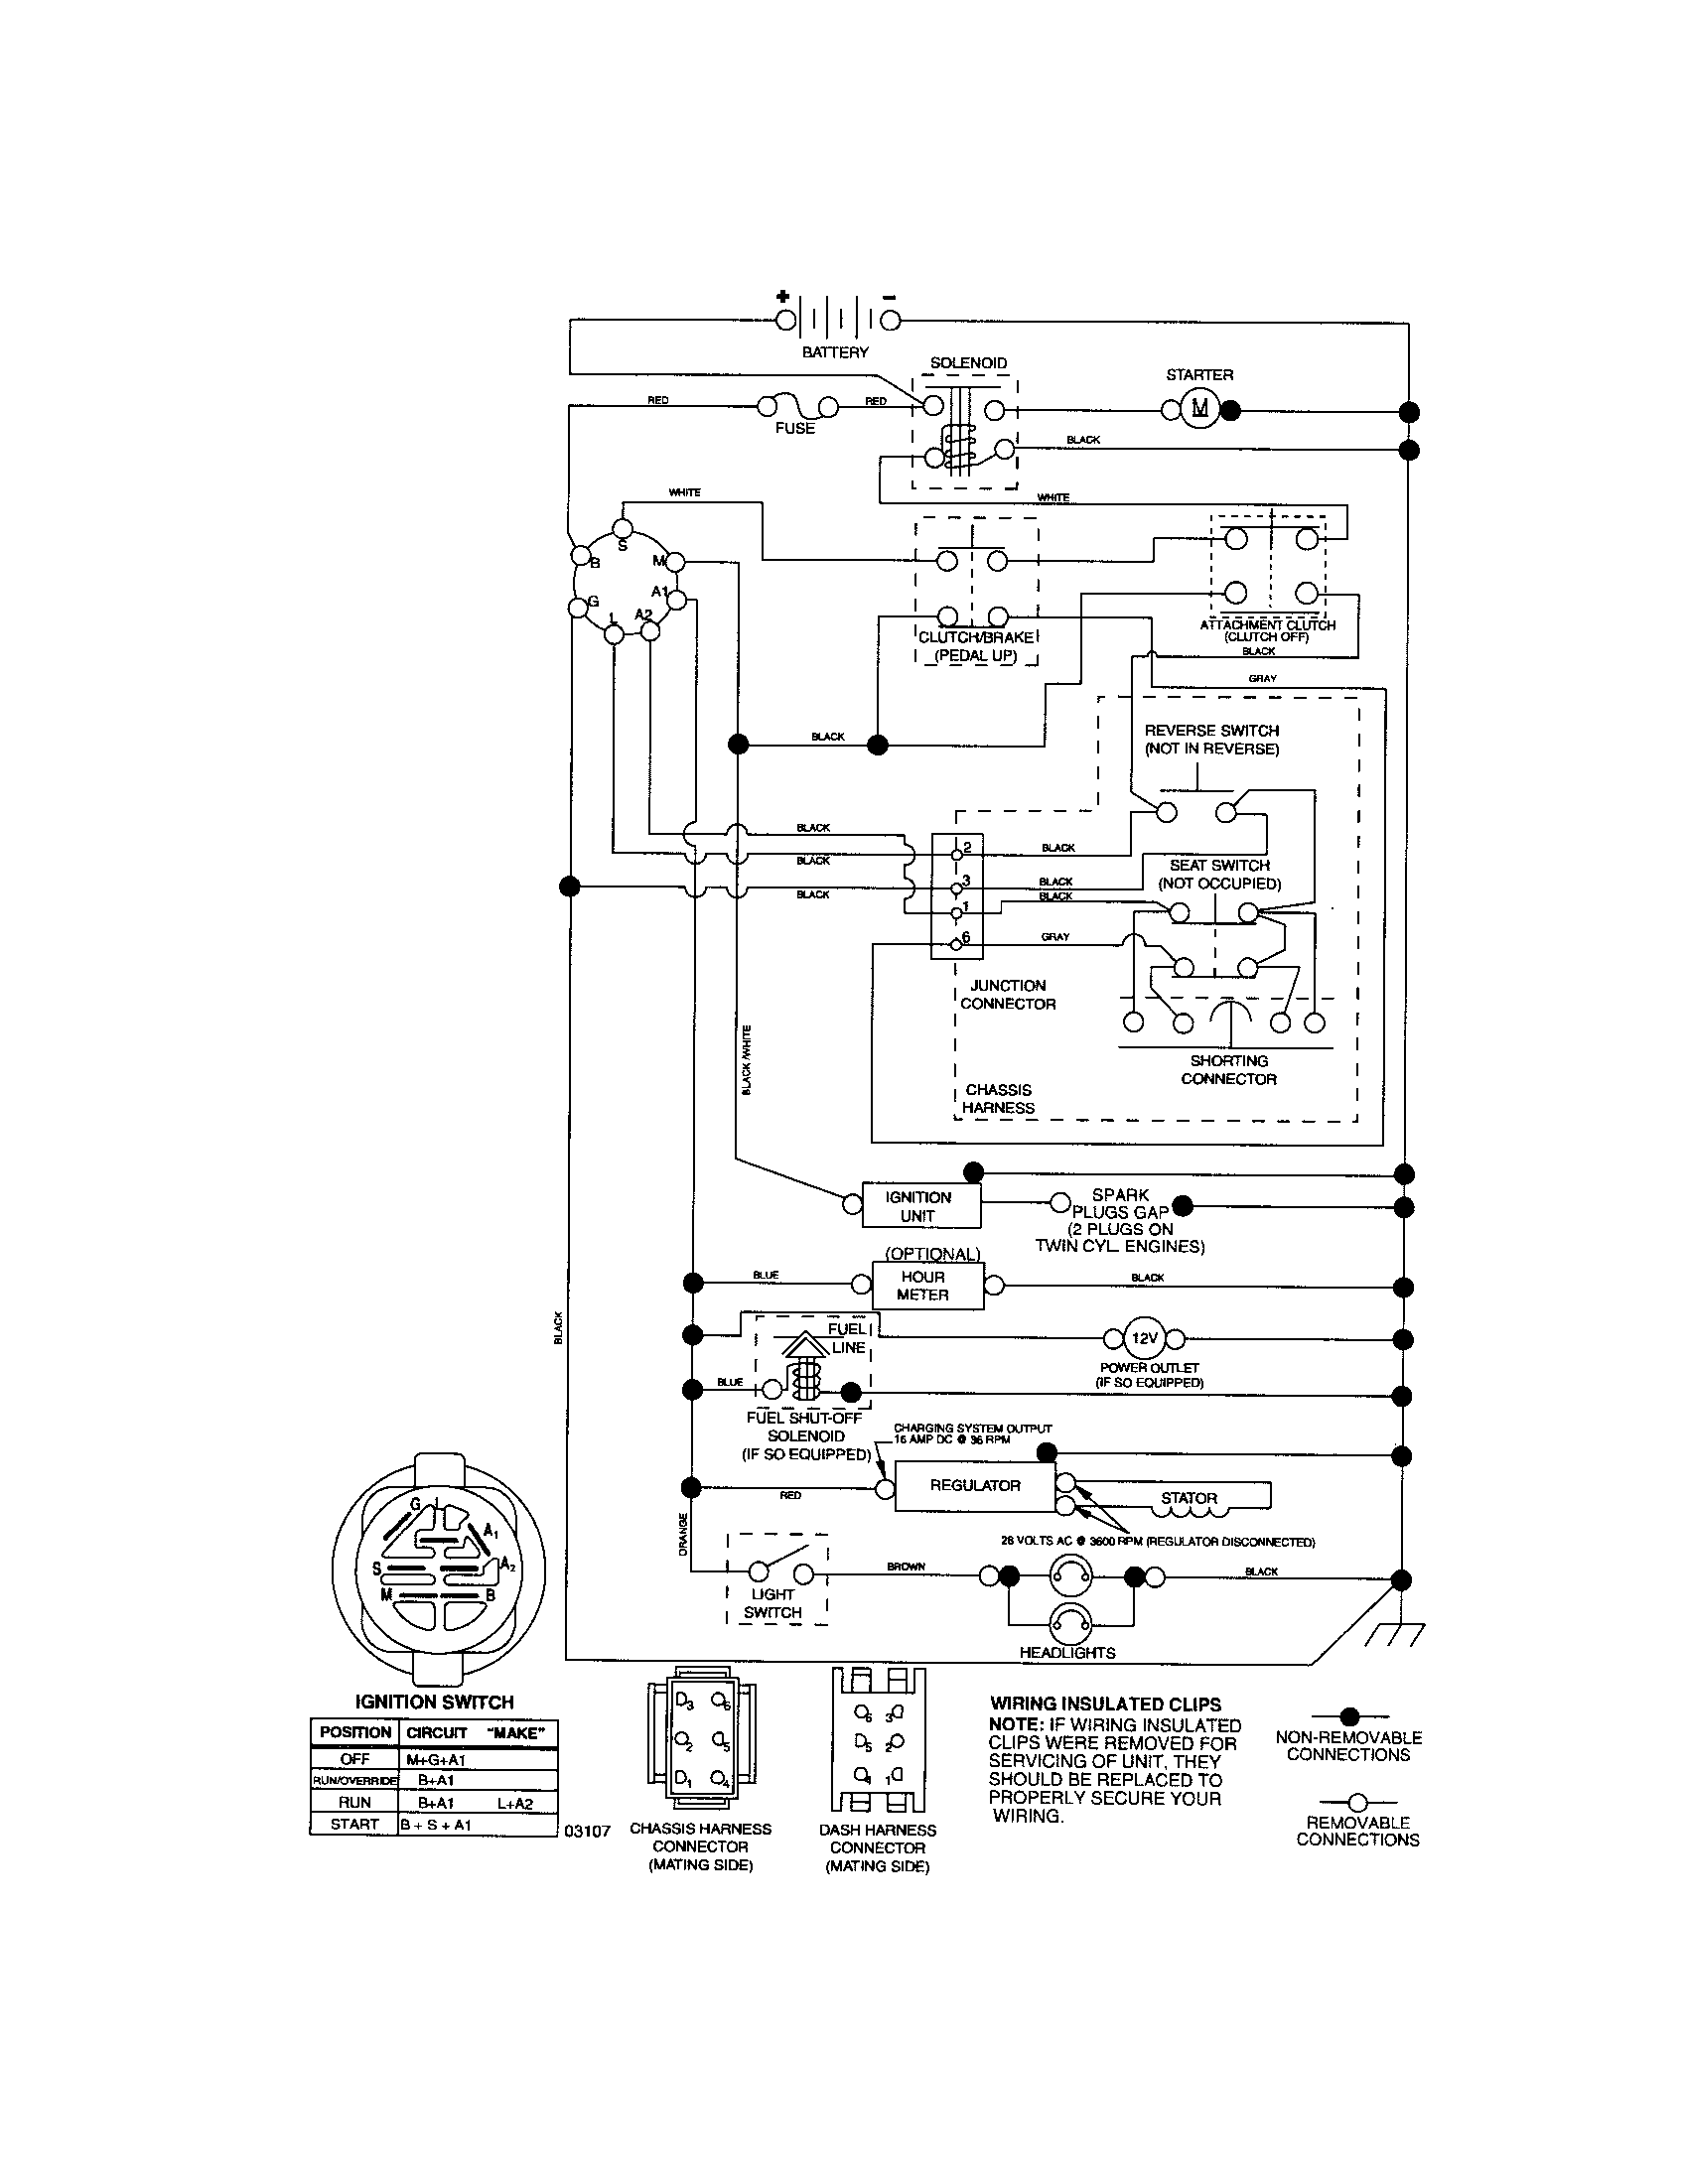 6af5f1447fd13c8443376822ddc1e105 craftsman riding mower electrical diagram wiring diagram wiring diagram craftsman riding mower at gsmx.co